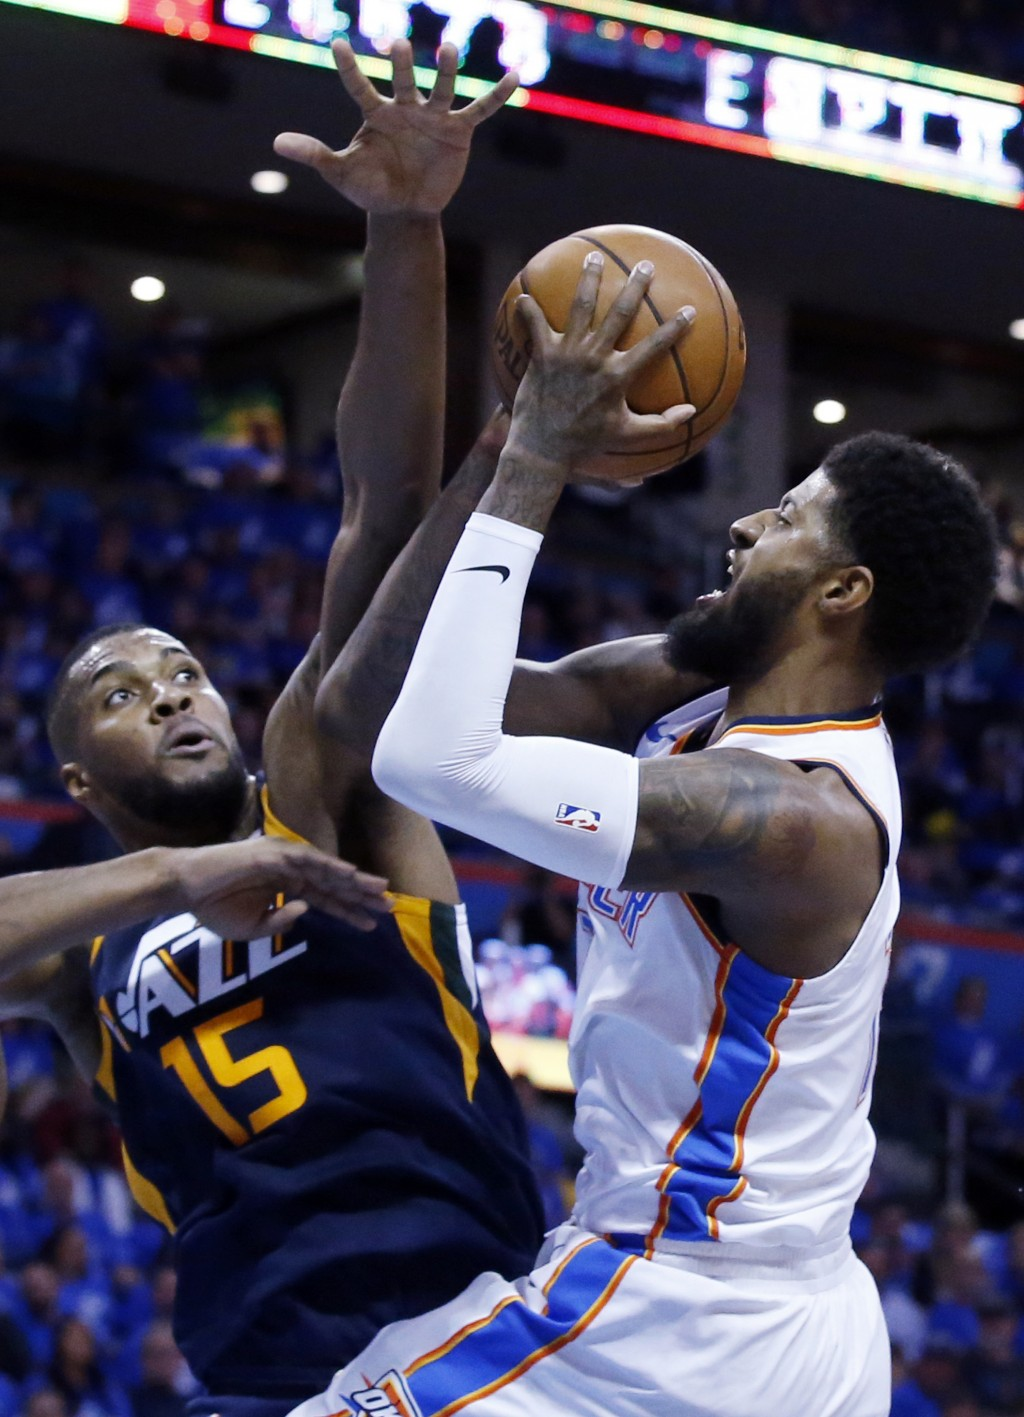 Oklahoma City Thunder forward Paul George, right, shoots as Utah Jazz forward Derrick Favors (15) defends in the first half of Game 1 of an NBA basket